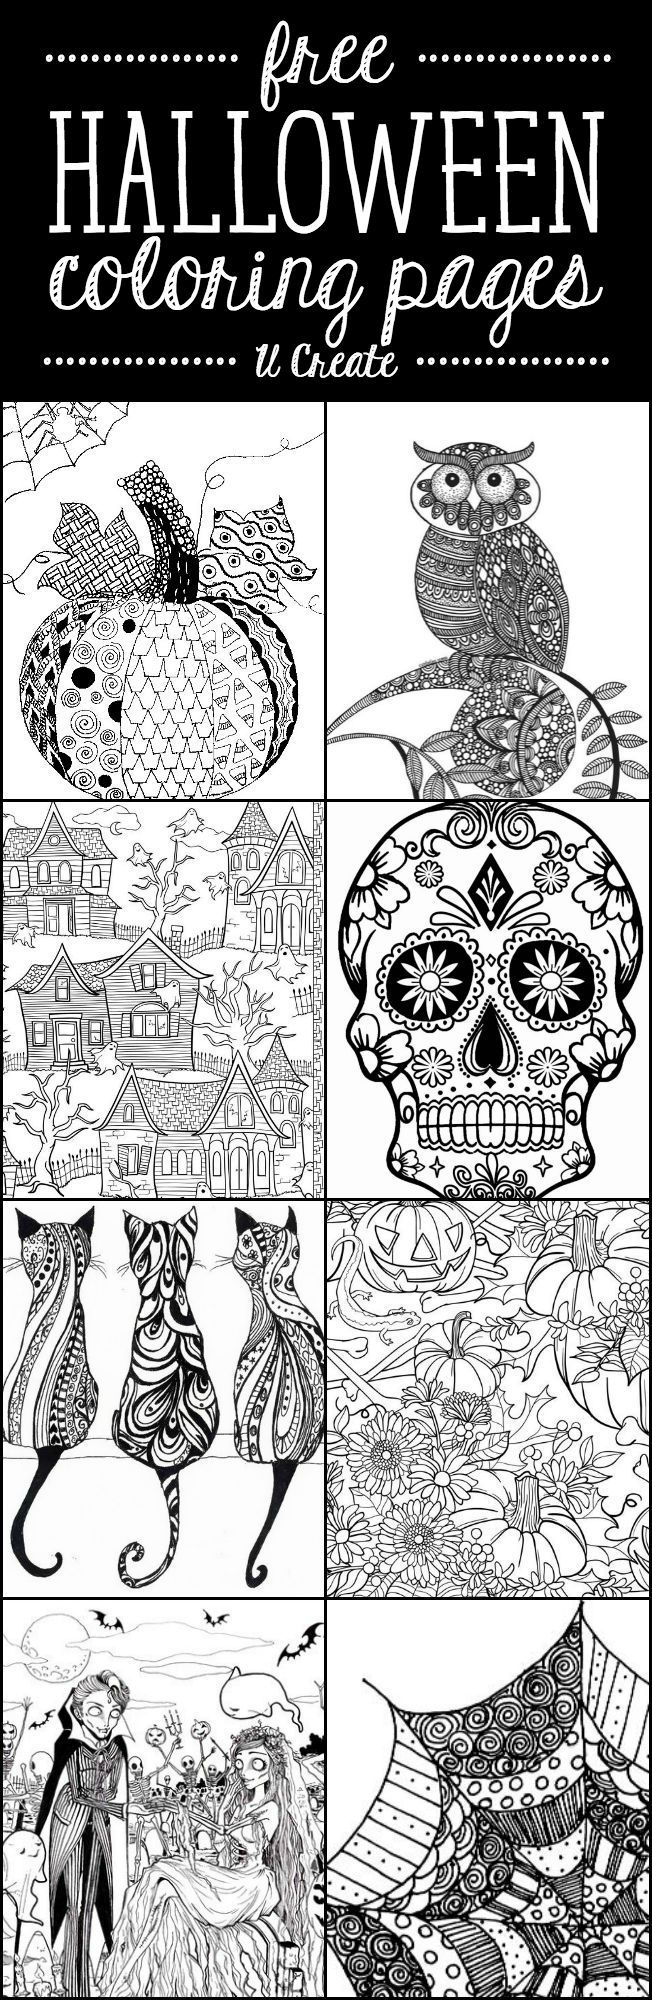 Free Halloween Adult Coloring Pages (U Create) | Adult coloring ...